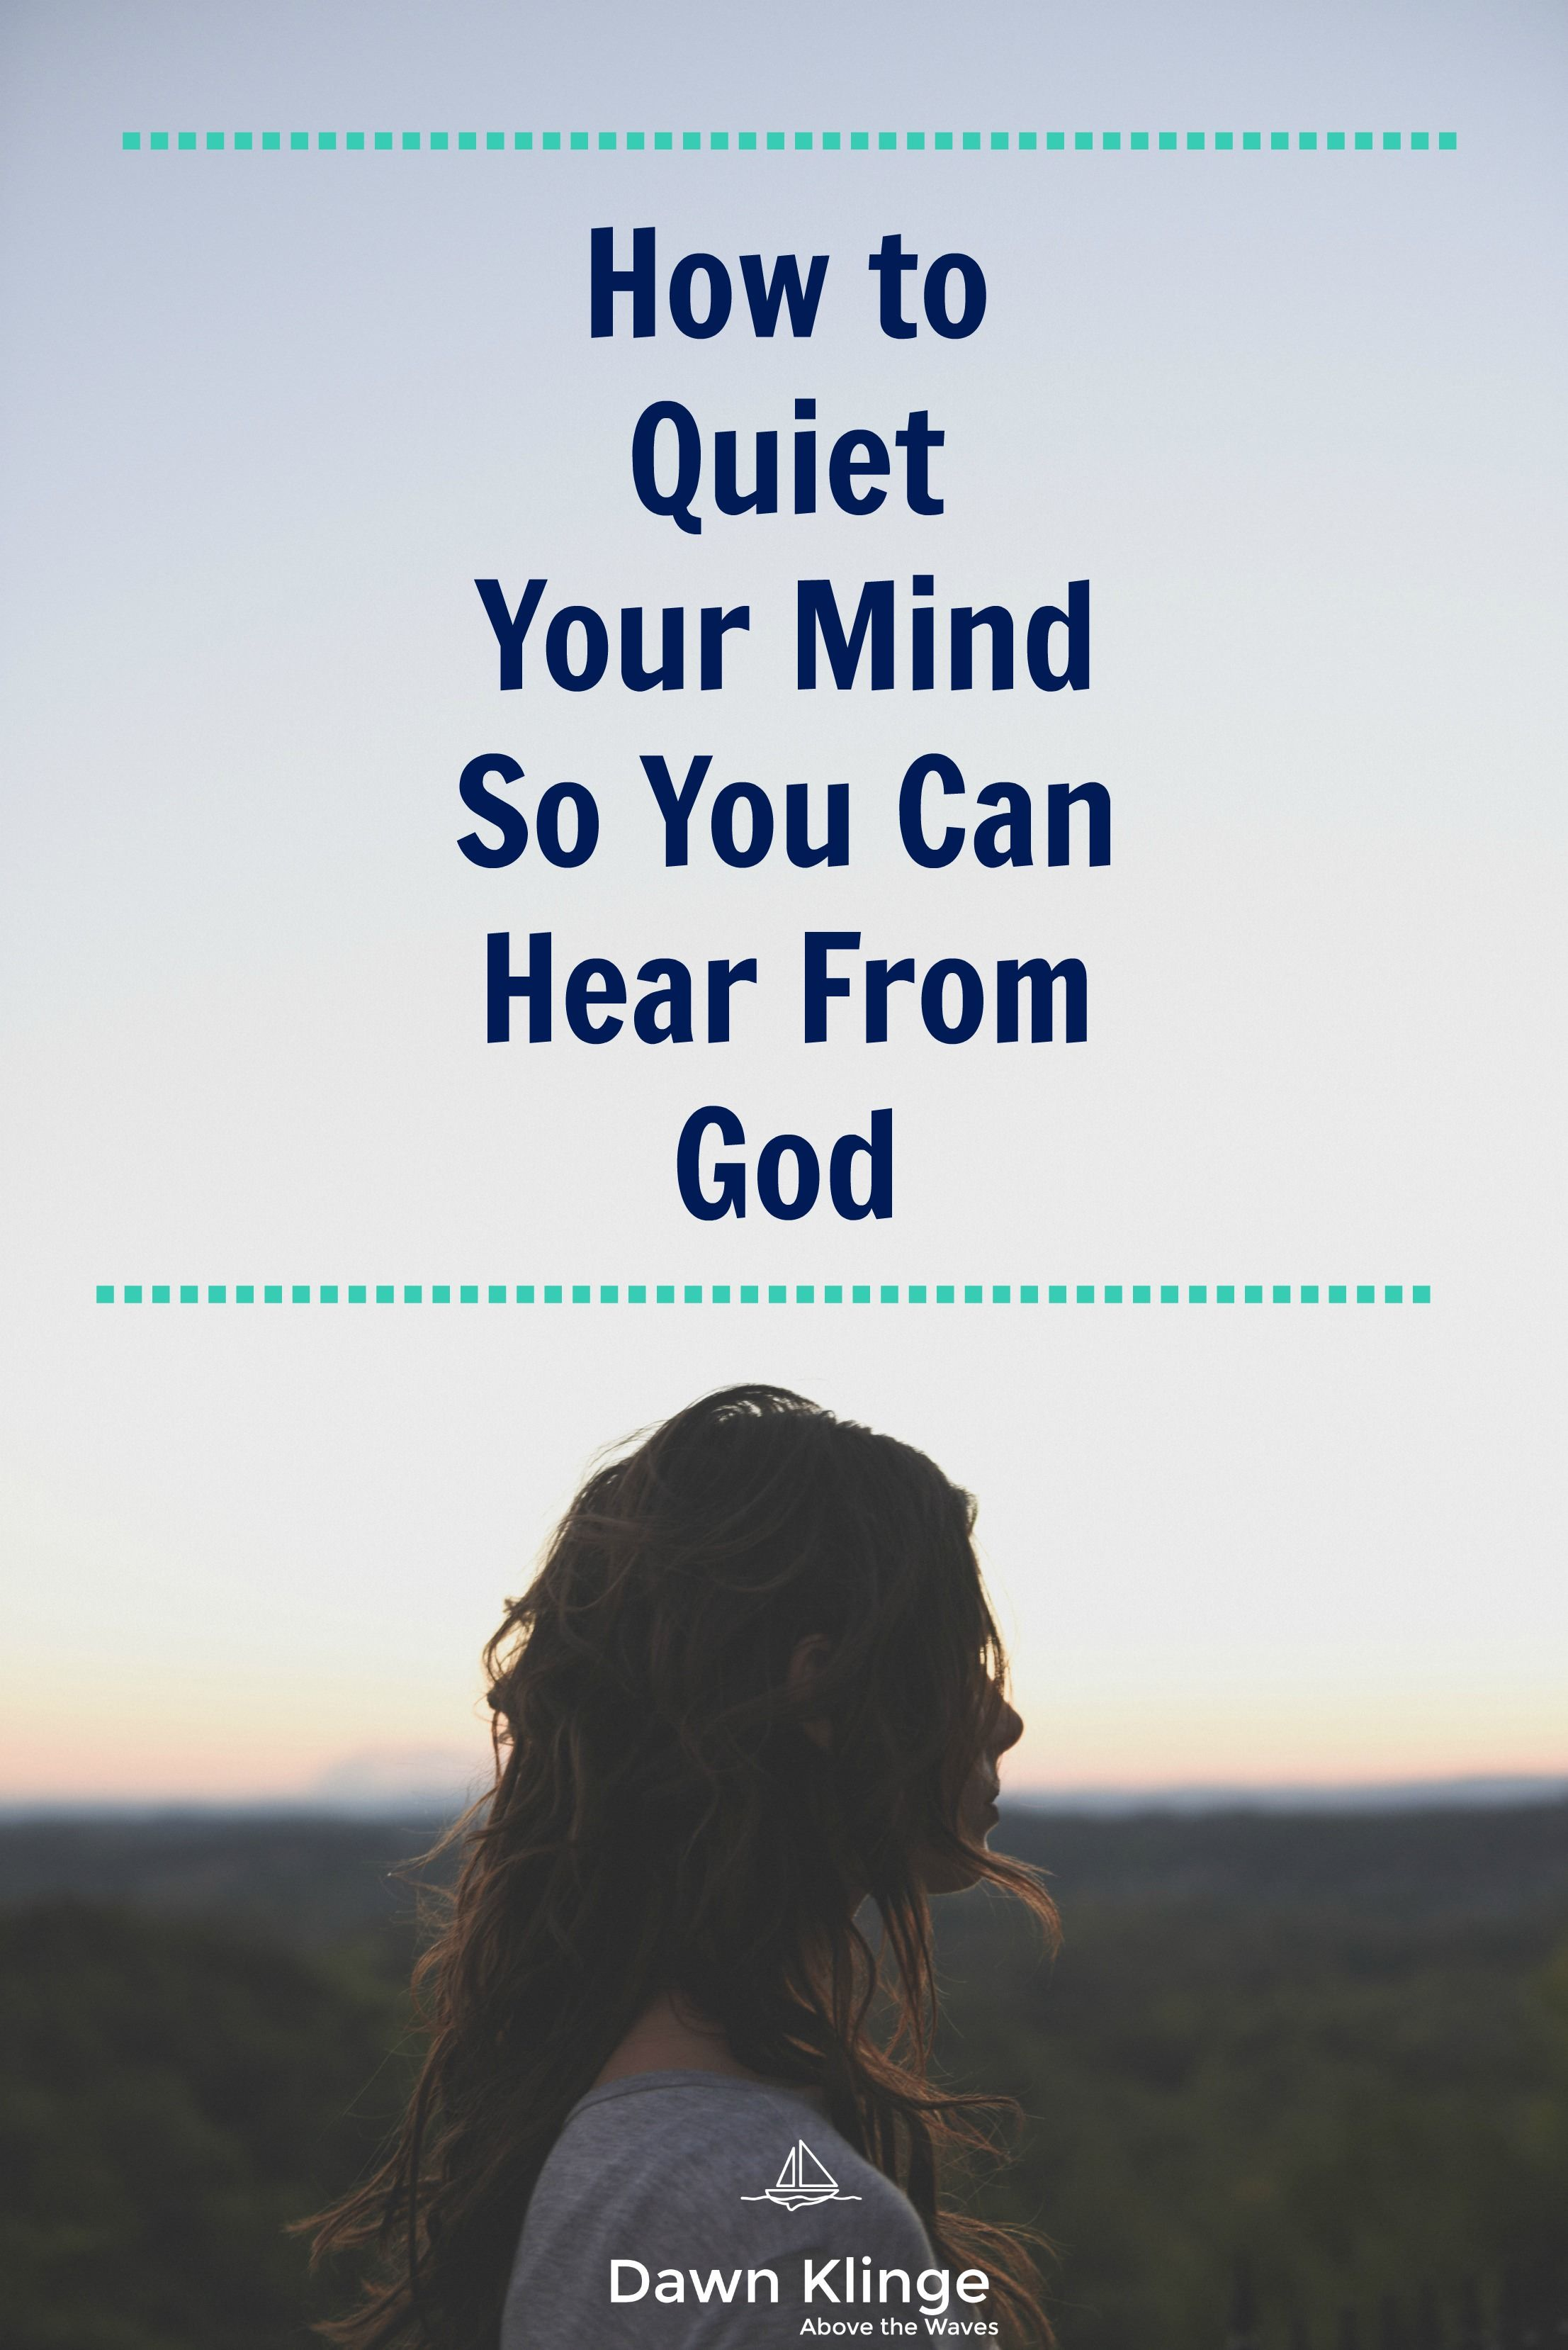 How to Quiet Your Mind So You Can Hear From God | words of